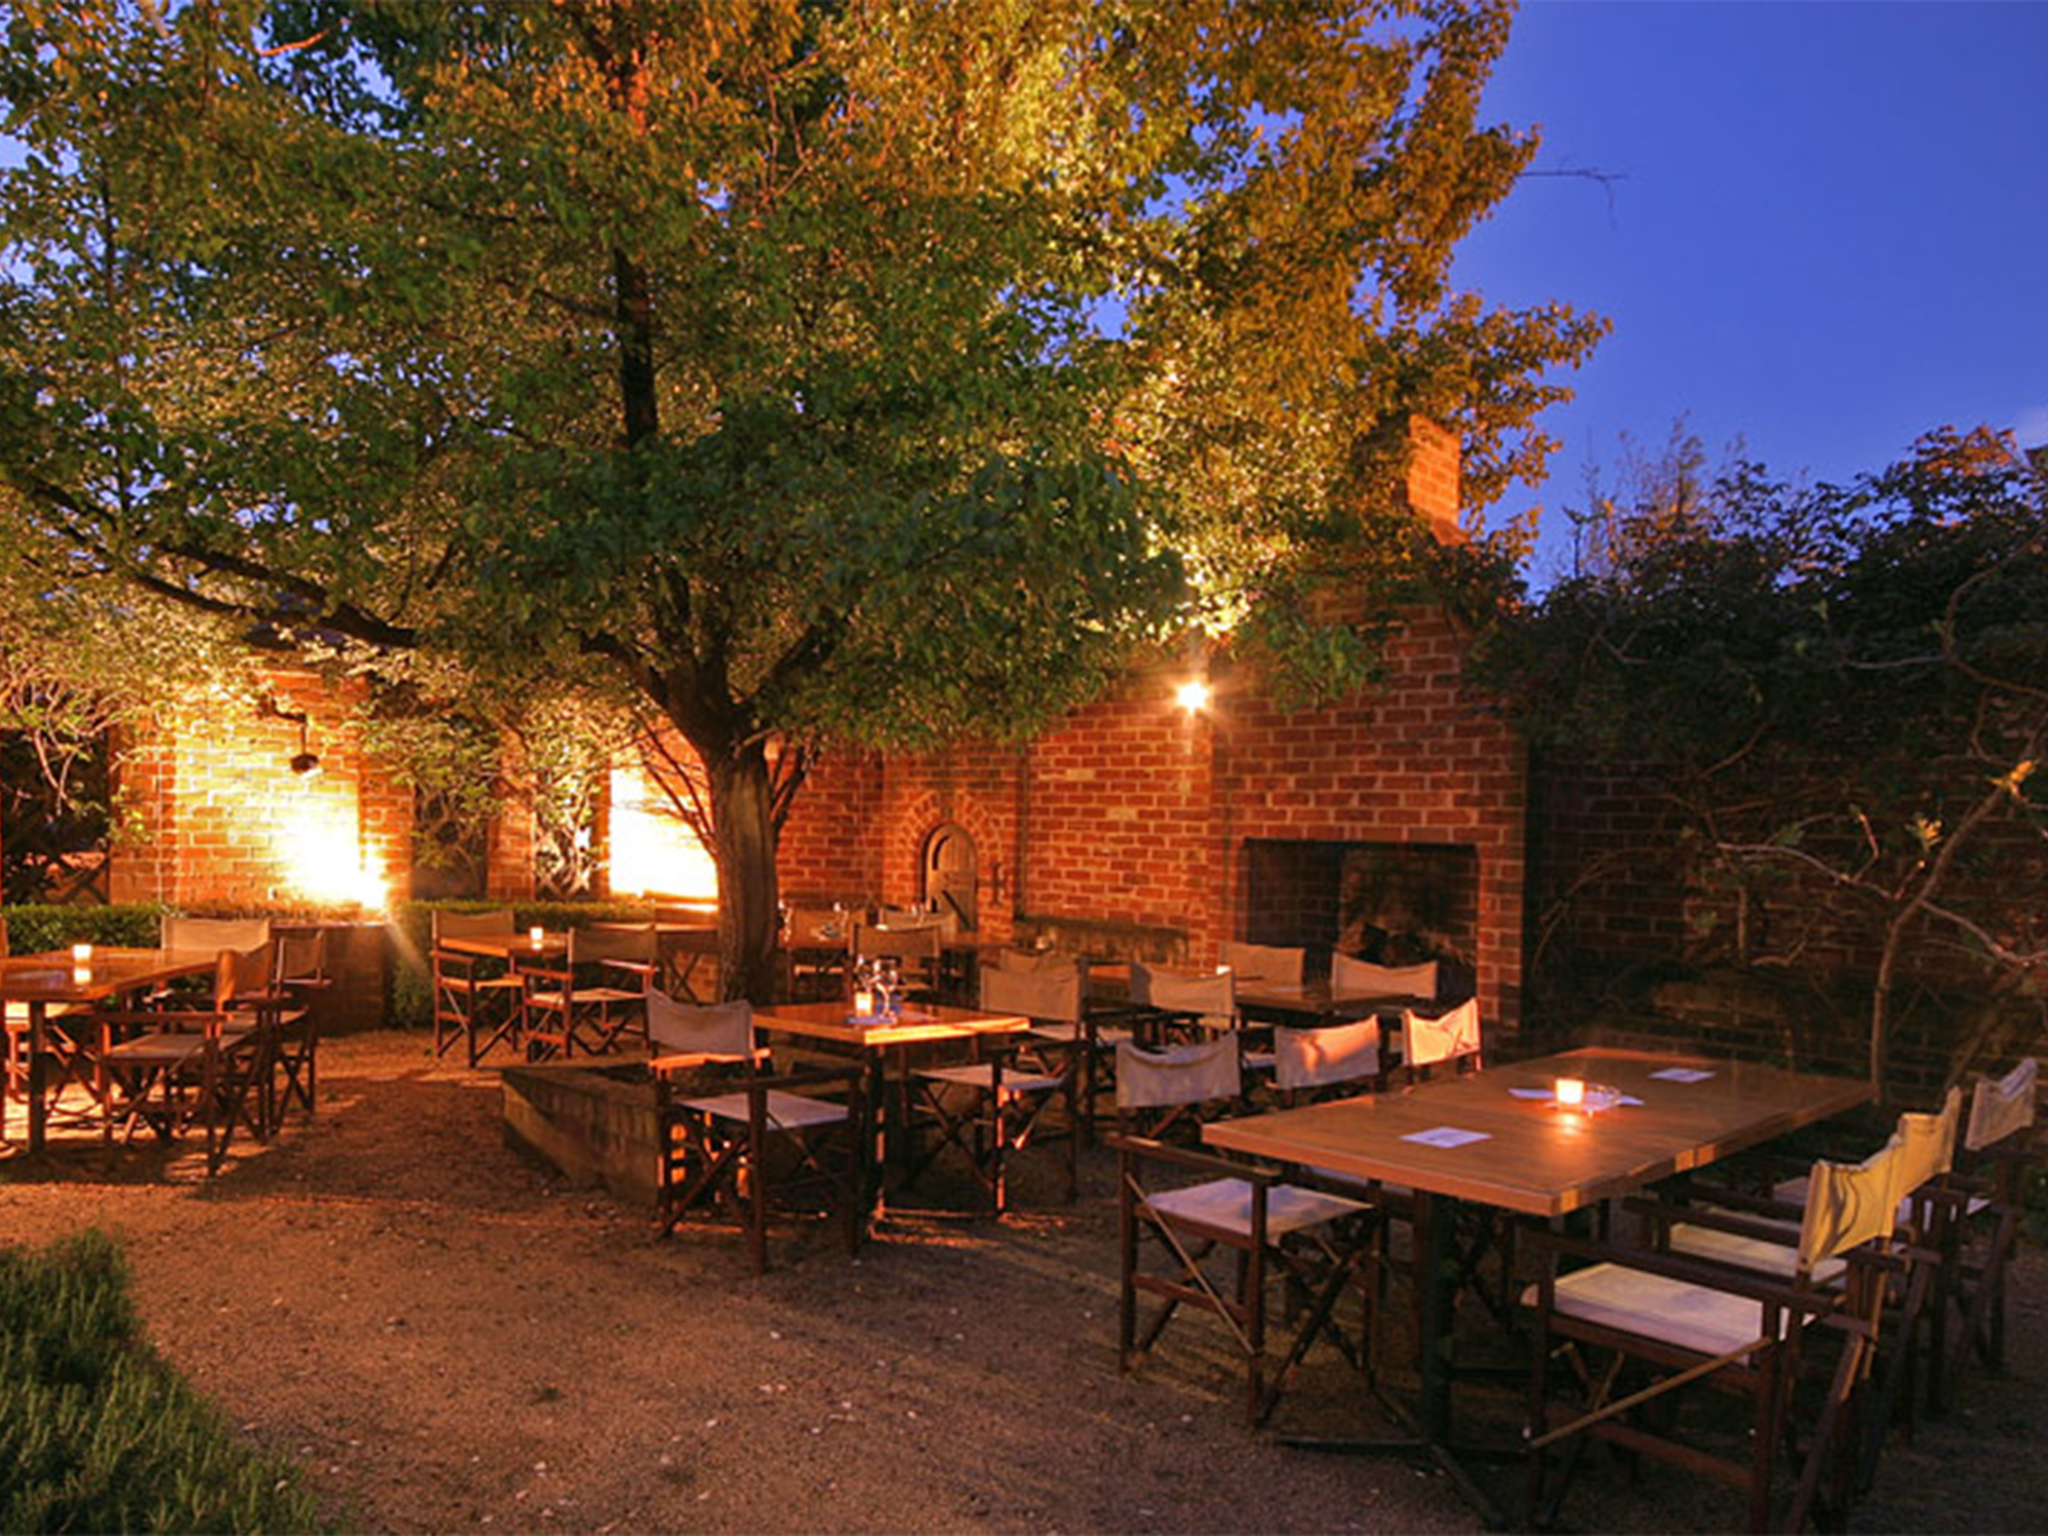 Dusk in the courtyard a restaurant